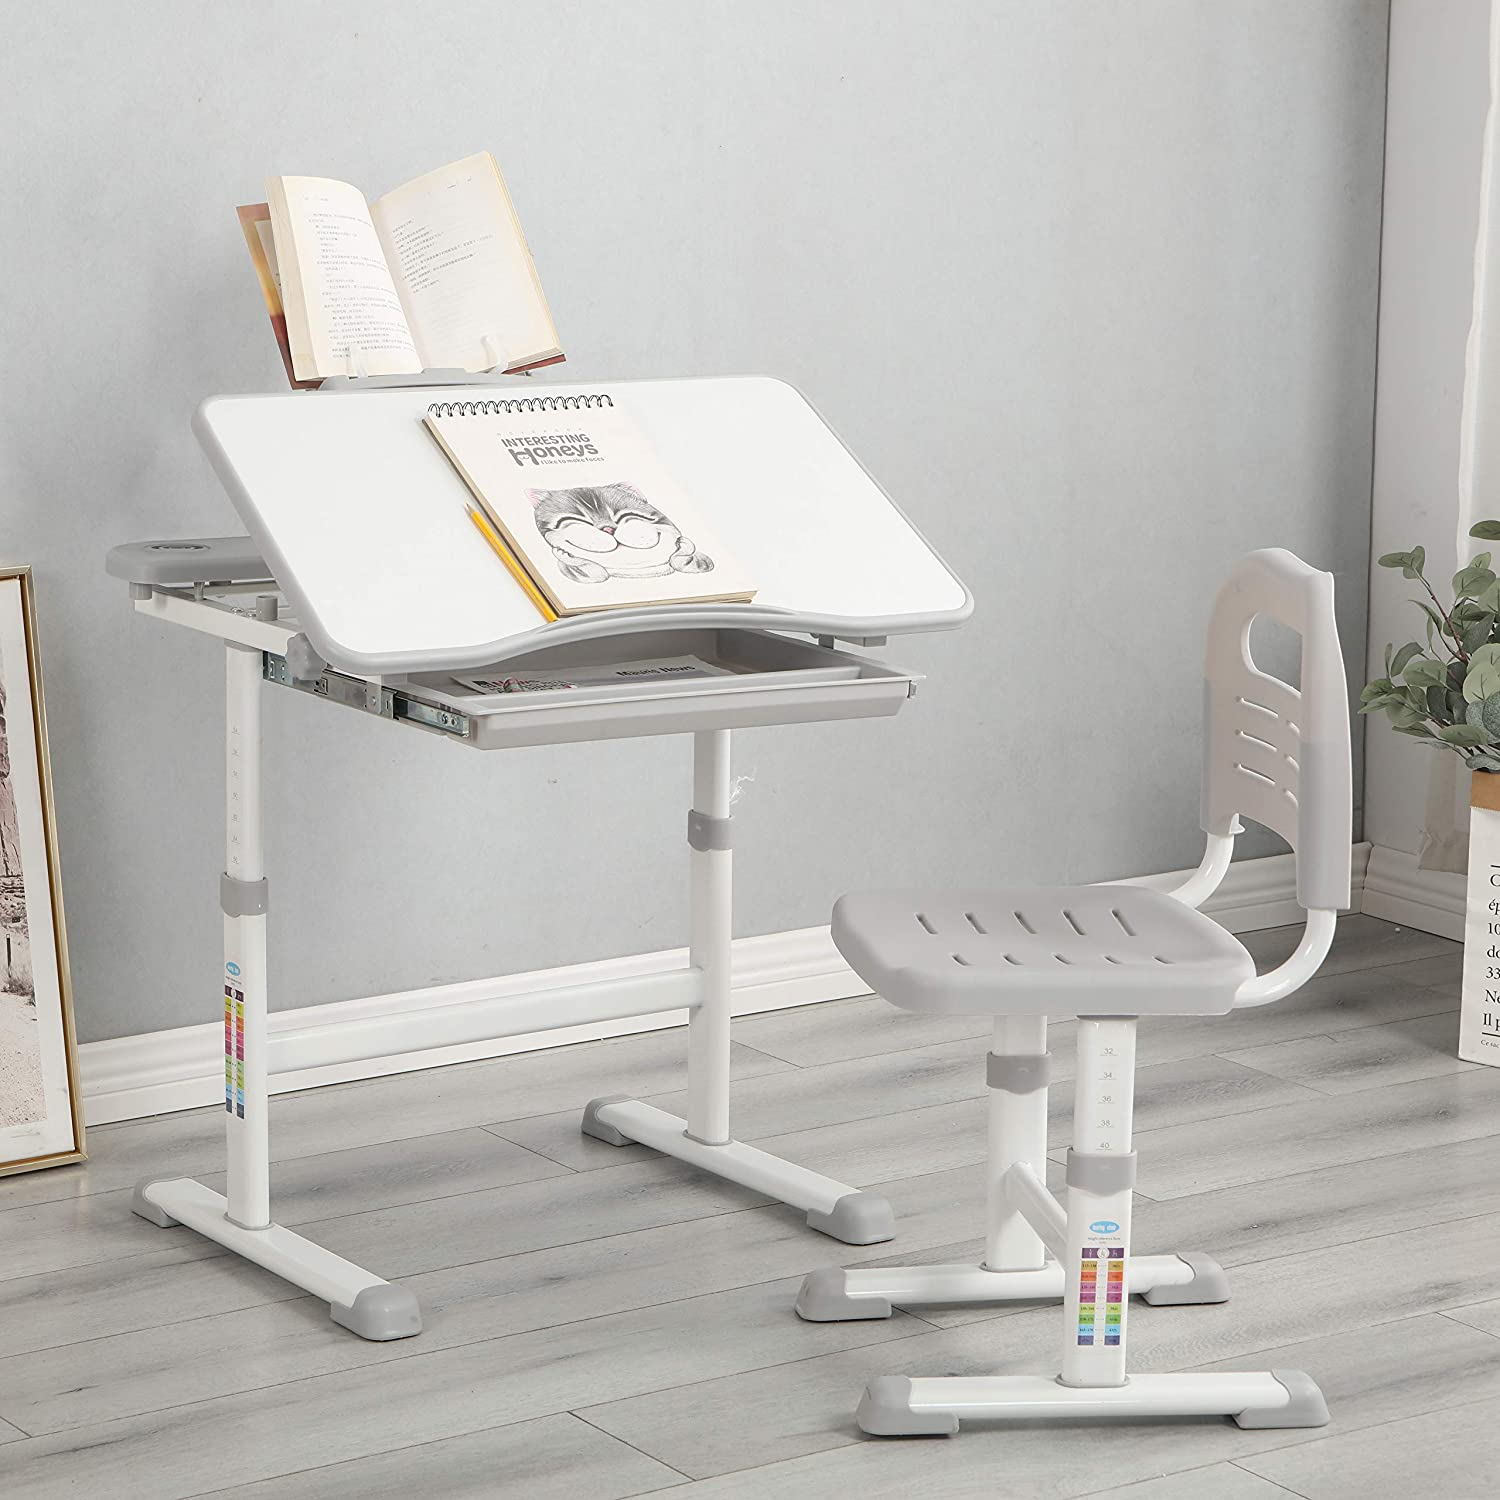 Anwick Kids Desk and Chair Set Adjustable Height Wr Study Childs Financial sales Max 75% OFF sale